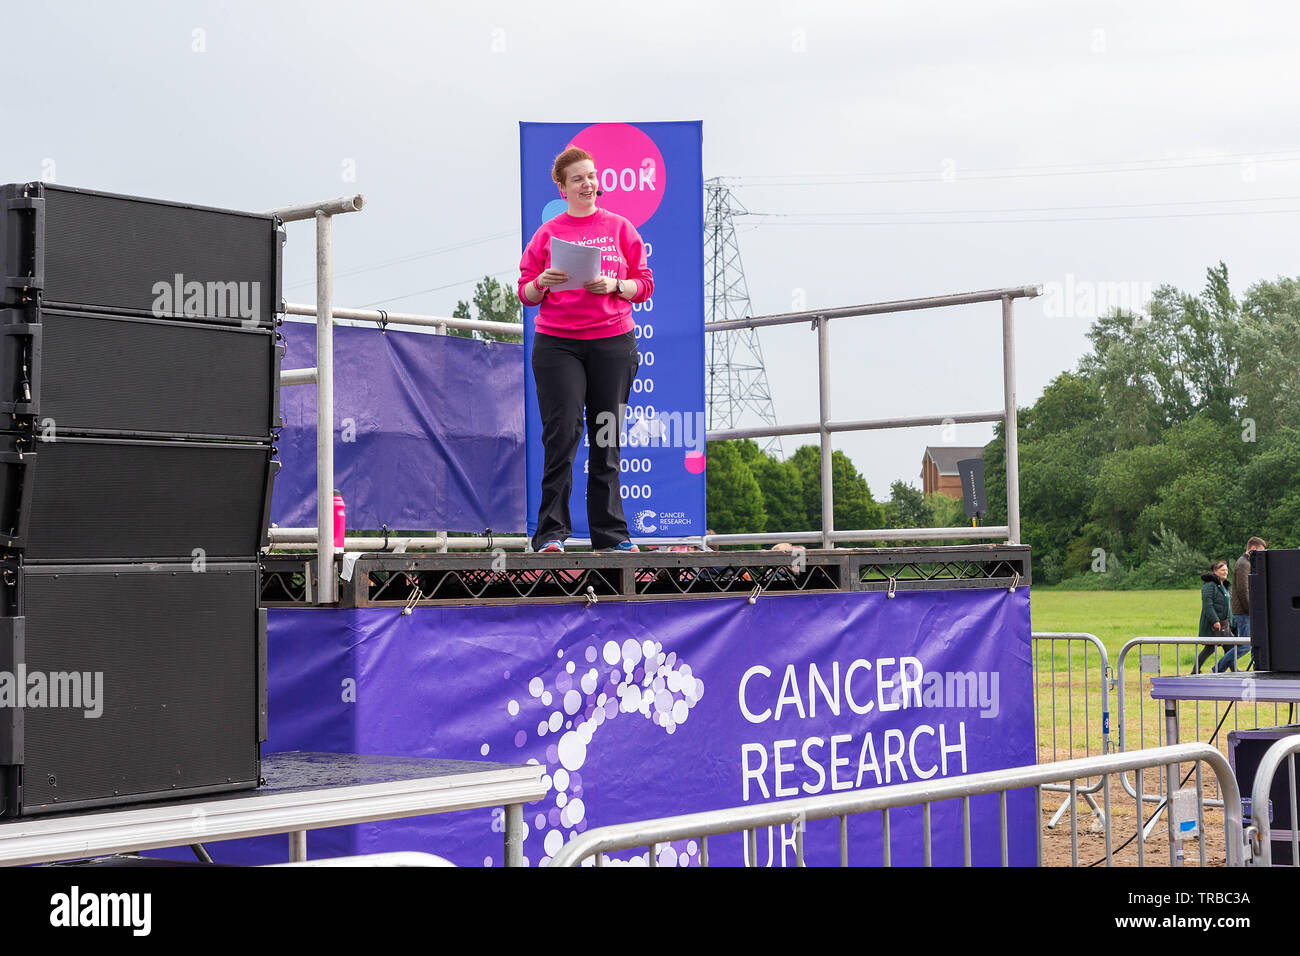 Warrington, UK. 2nd June 2019. Race for Life 2019, Warrington, in aid of Cancer Research Credit: John Hopkins/Alamy Live News - Stock Image